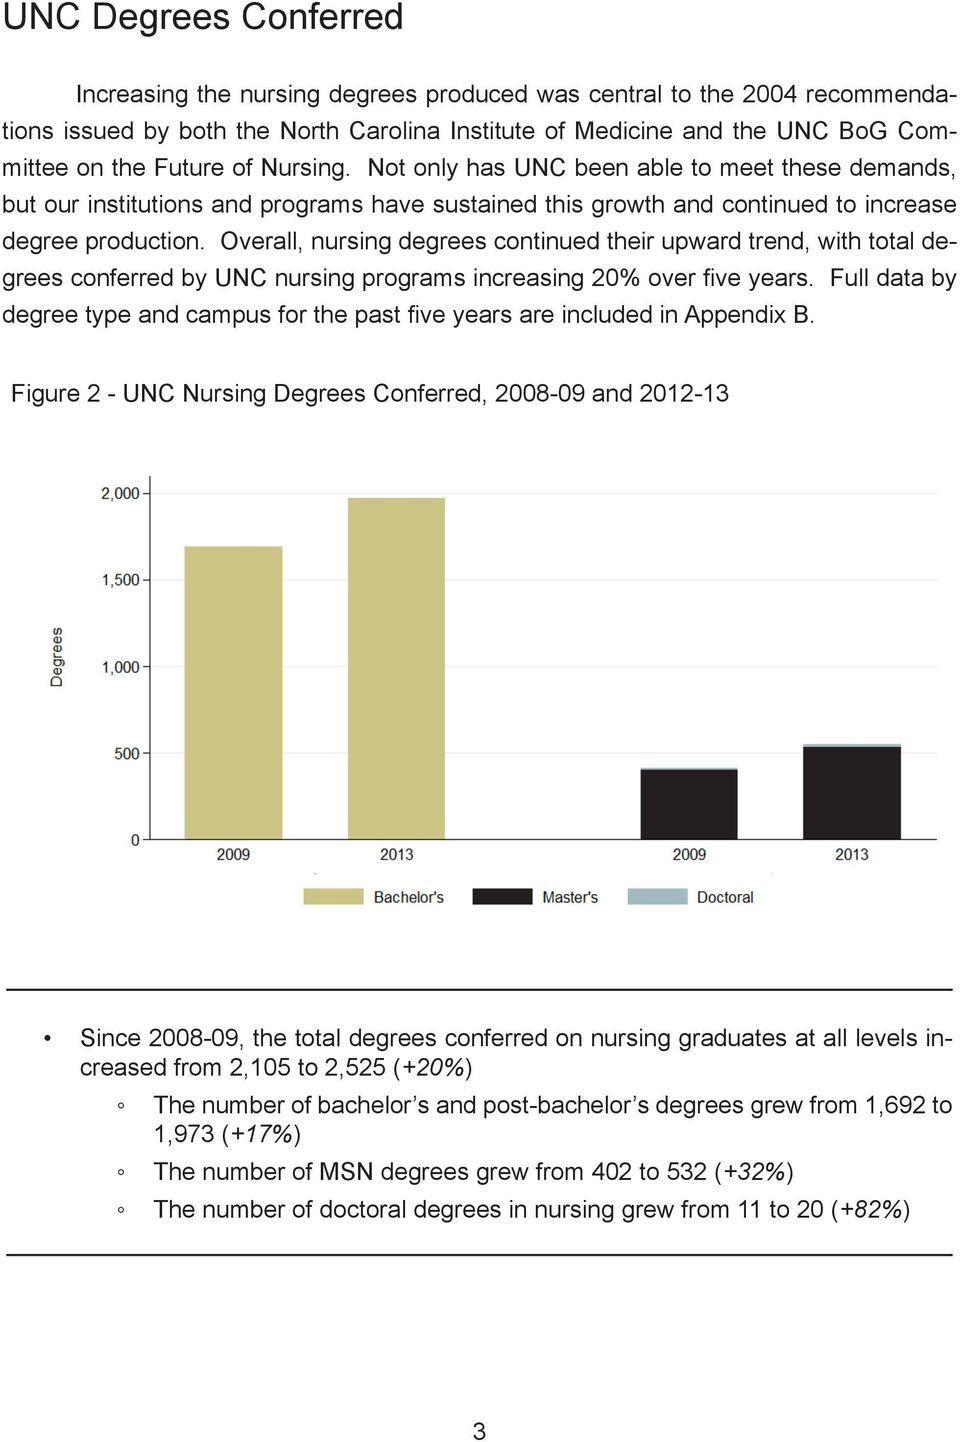 Overall, nursing degrees continued their upward trend, with total degrees conferred by UNC nursing programs increasing 20% over five years.